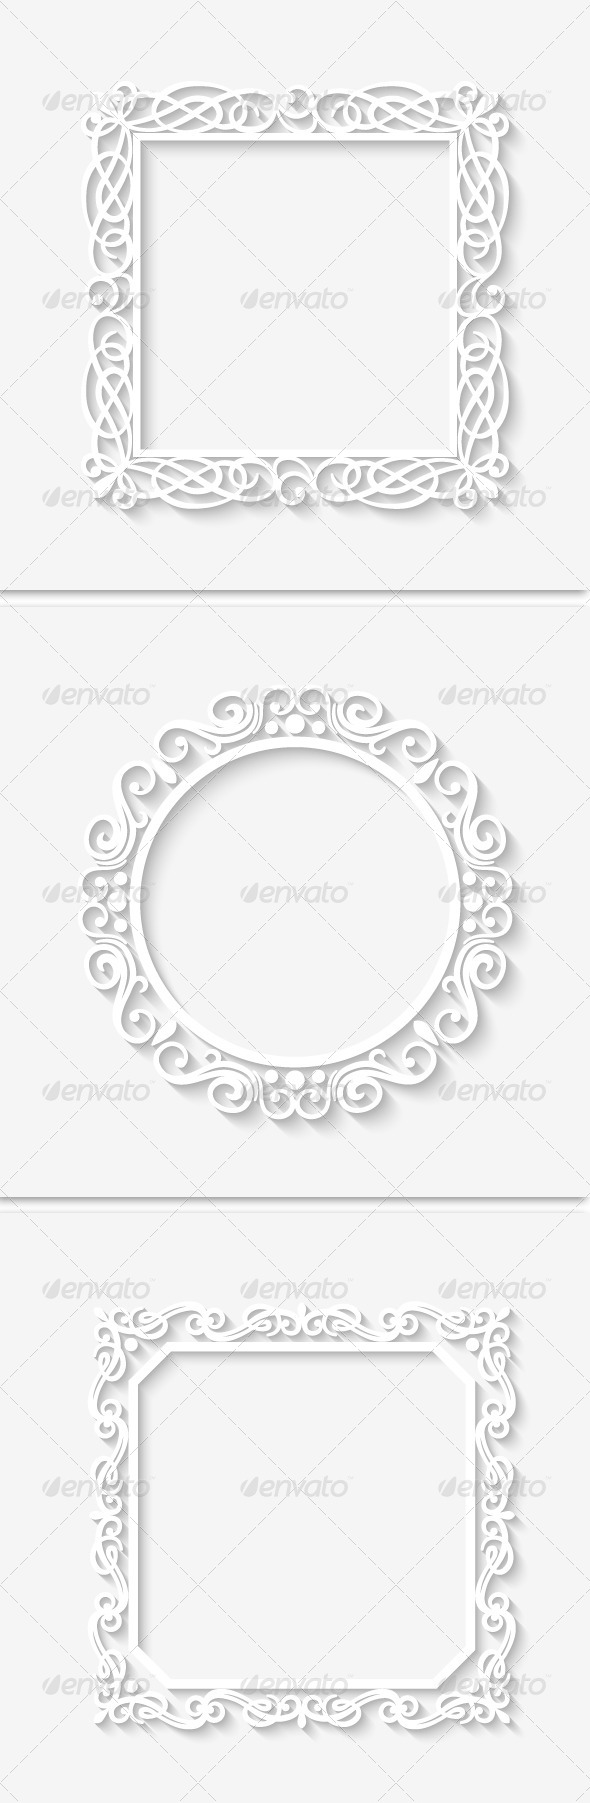 GraphicRiver Vector Vintage White Border Frame 7140312